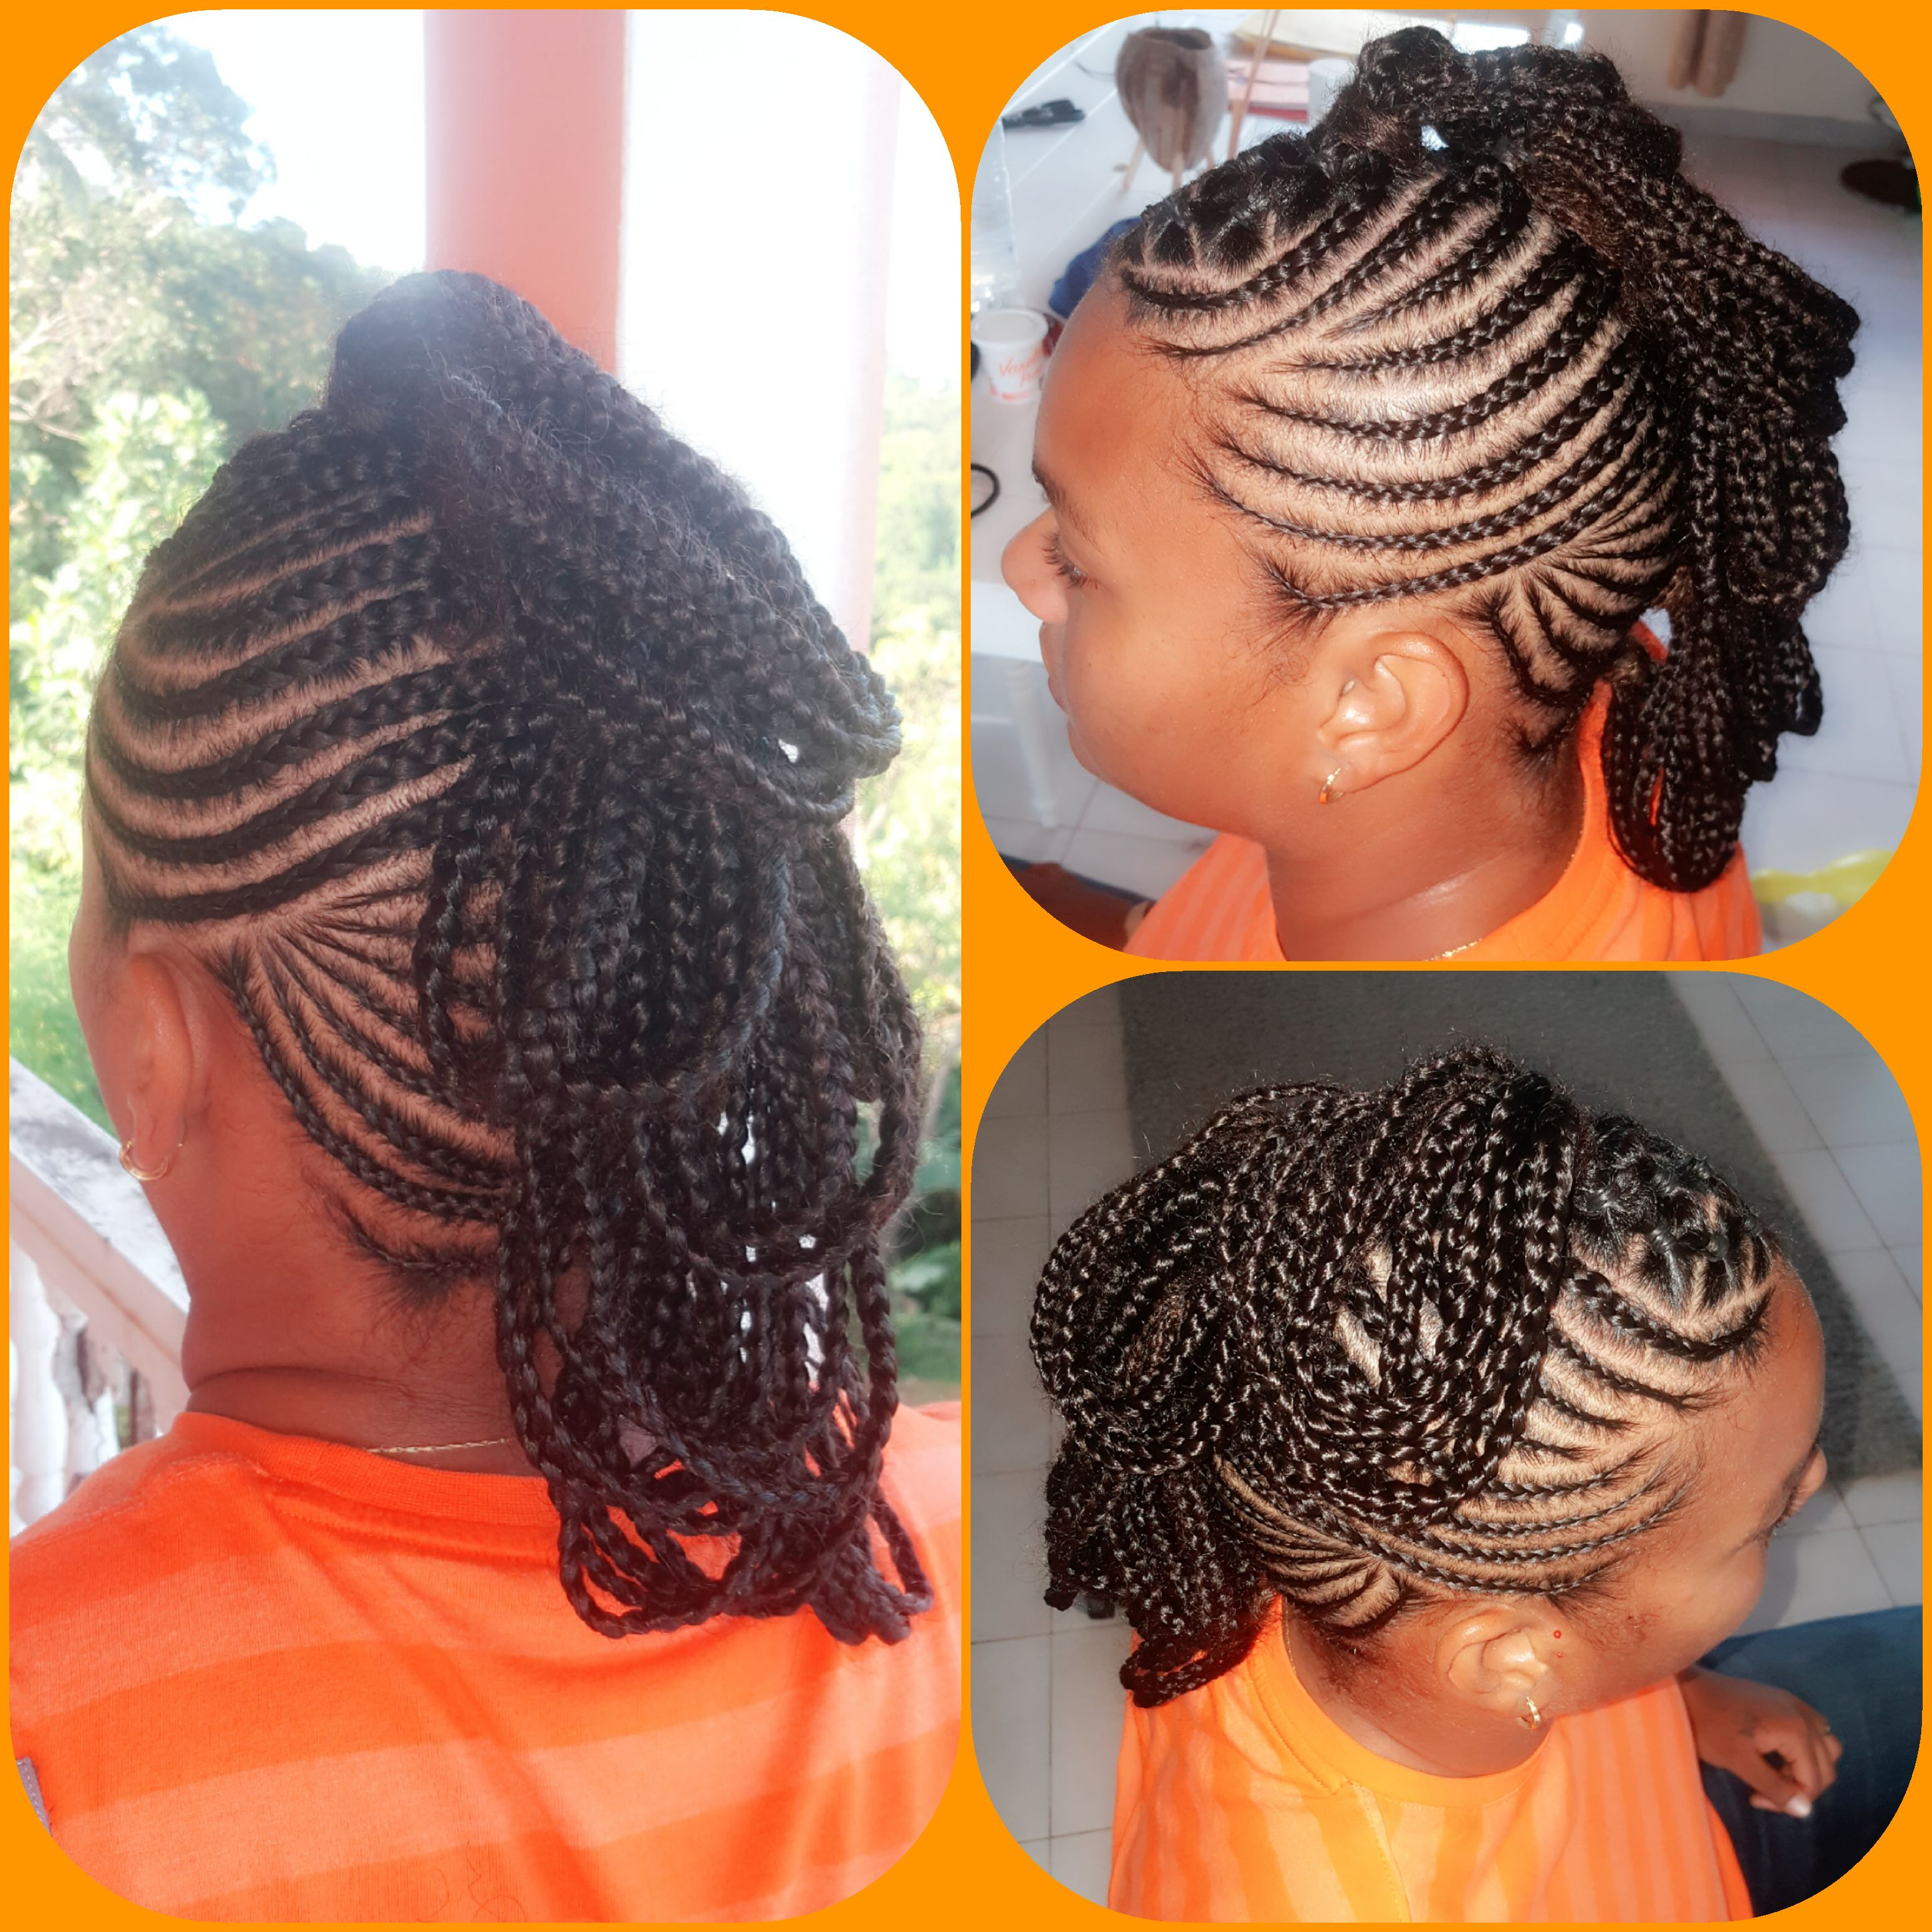 salon de coiffure afro tresse tresses box braids crochet braids vanilles tissages paris 75 77 78 91 92 93 94 95 OVGOQLPV